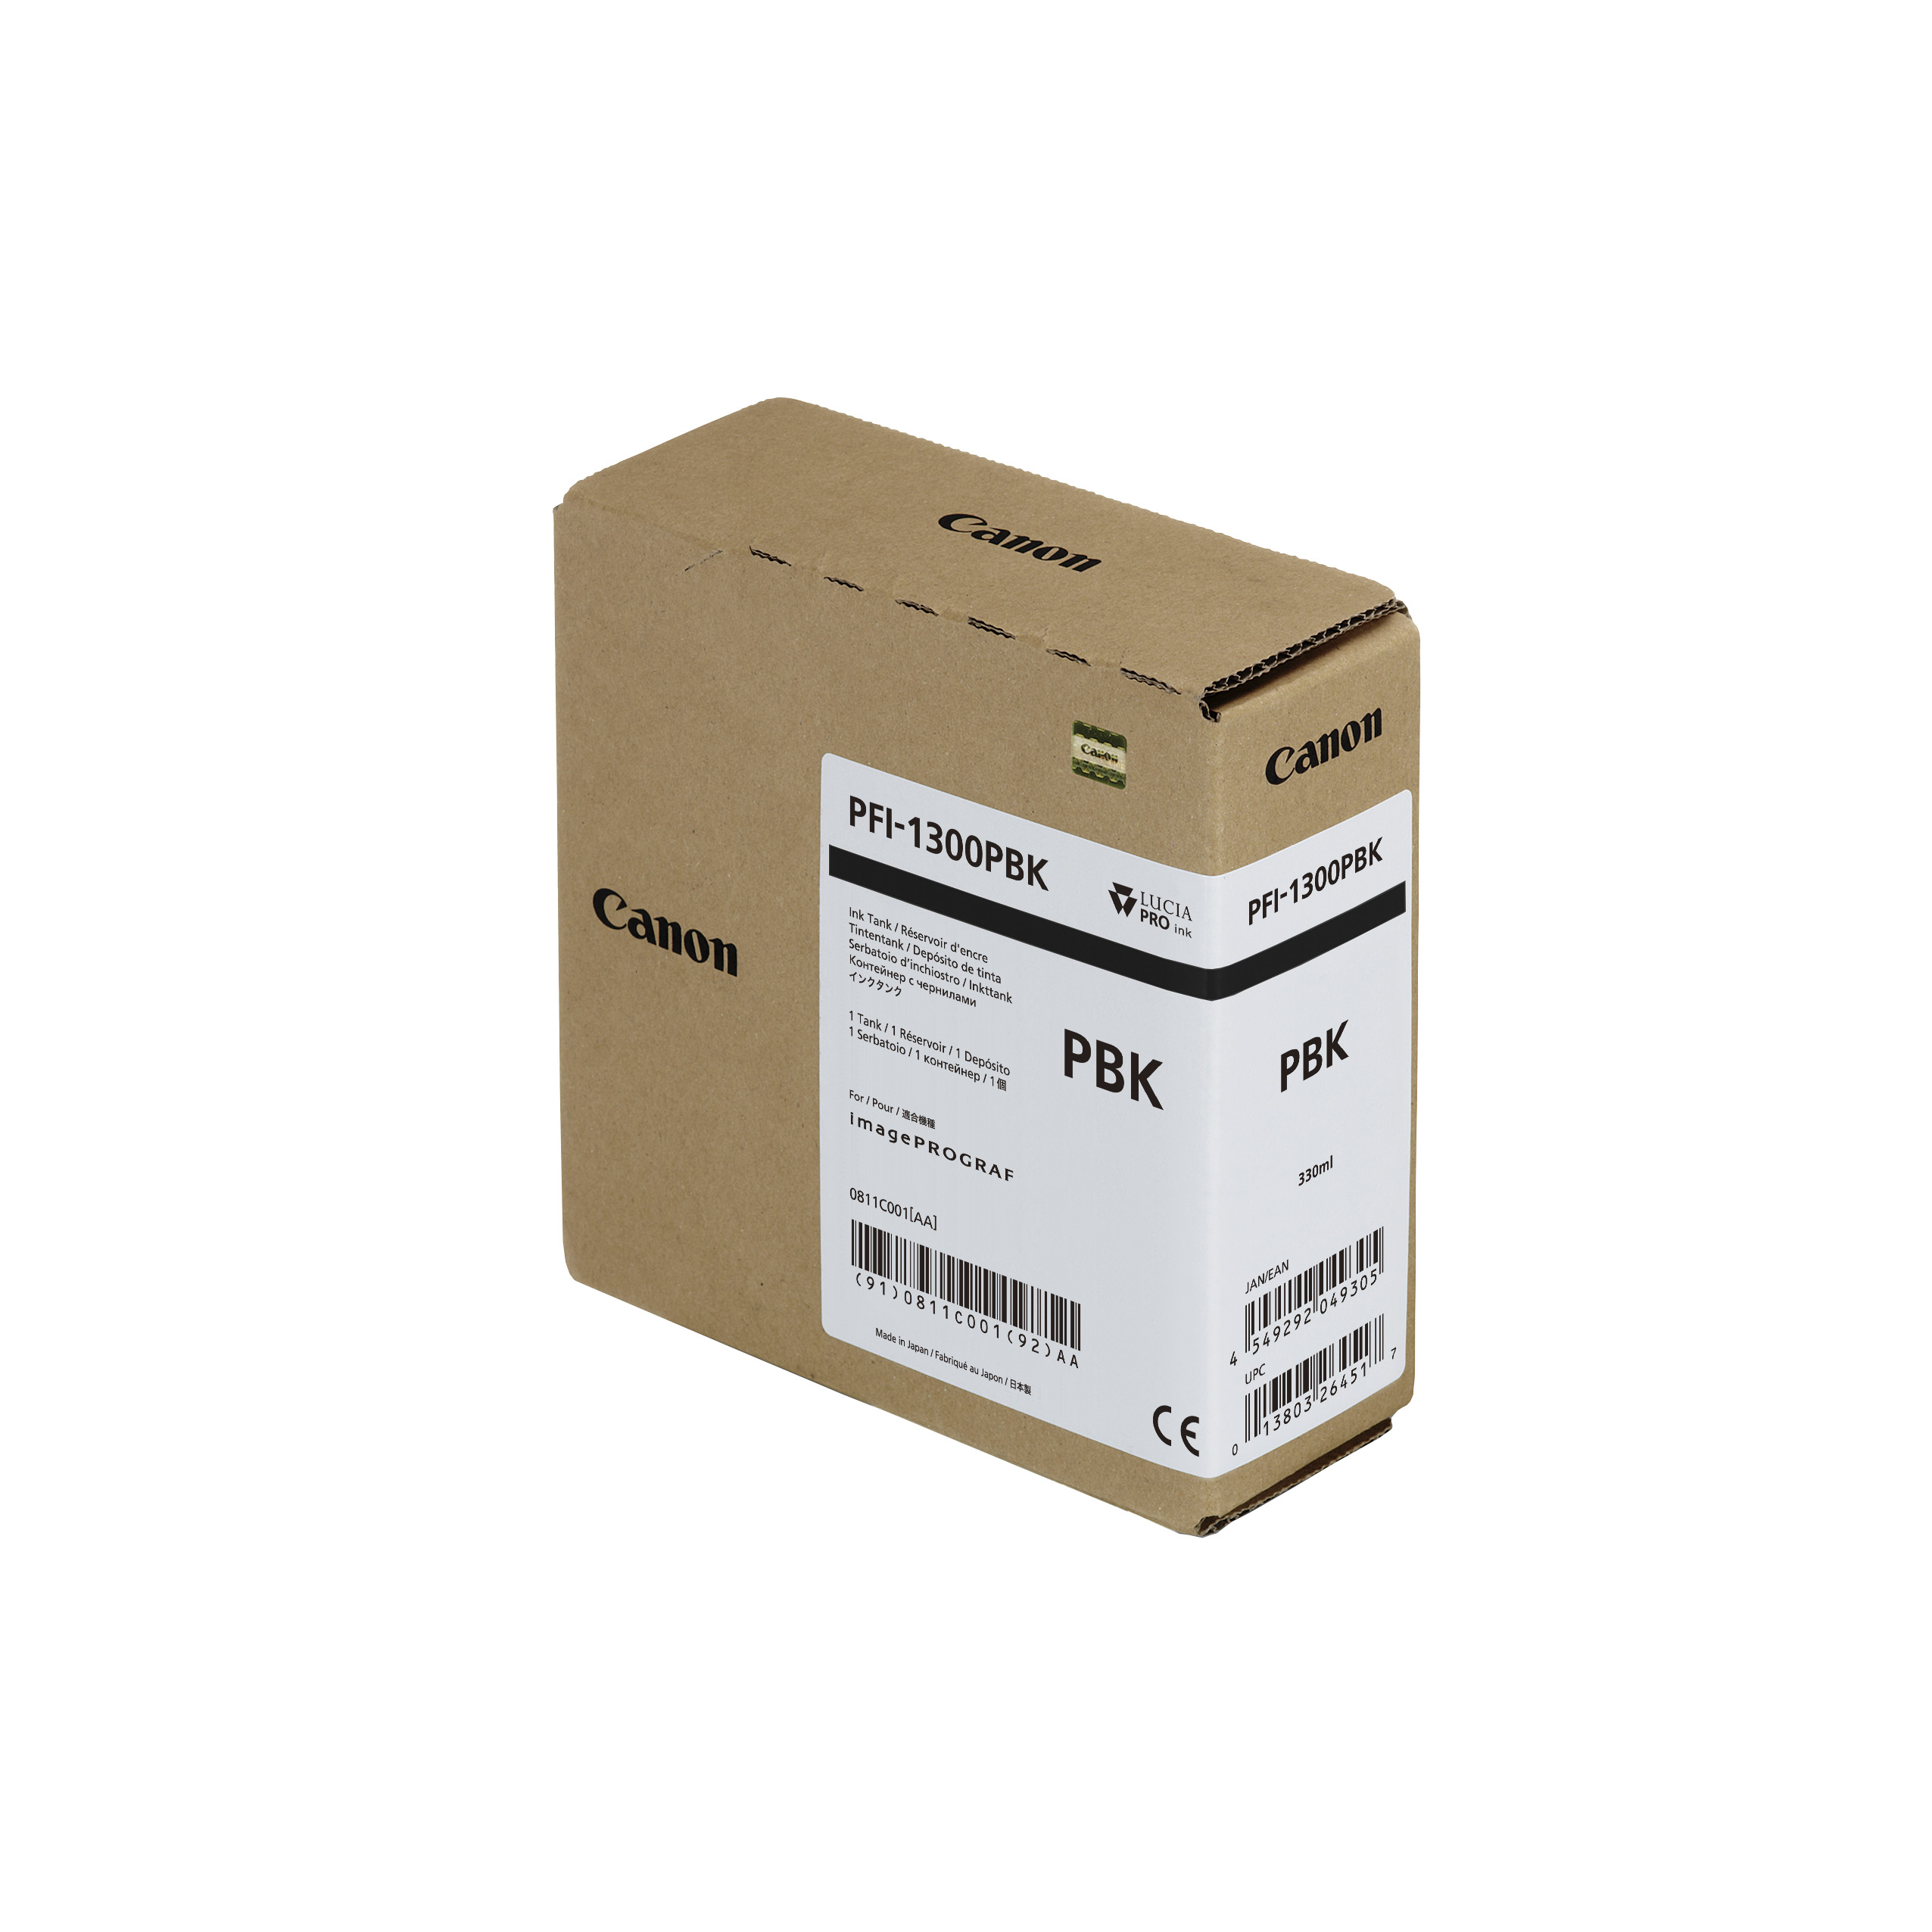 Canon PFI-1300PBK Photo Black Ink Tank - 3300ml Cartridge - for Canon PRO-2000, PRO-4000, PRO-4000S & PRO-6000S Printer - 0811C001AA - next day delivery from GDS Graphic Design Supplies Ltd